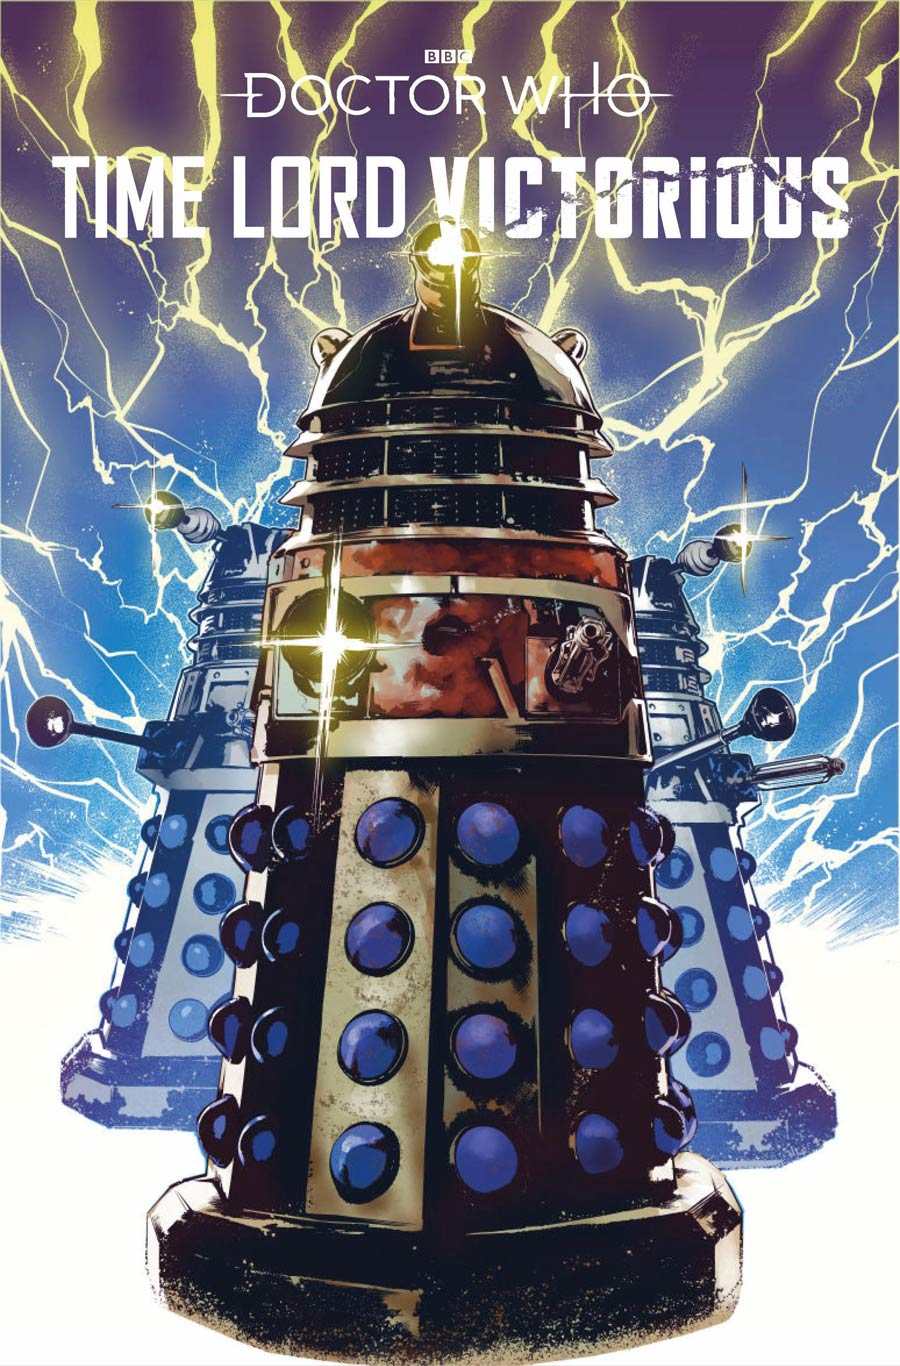 Doctor Who Time Lord Victorious #1 Cover D Variant Hendry Prasetya Dalek Cover